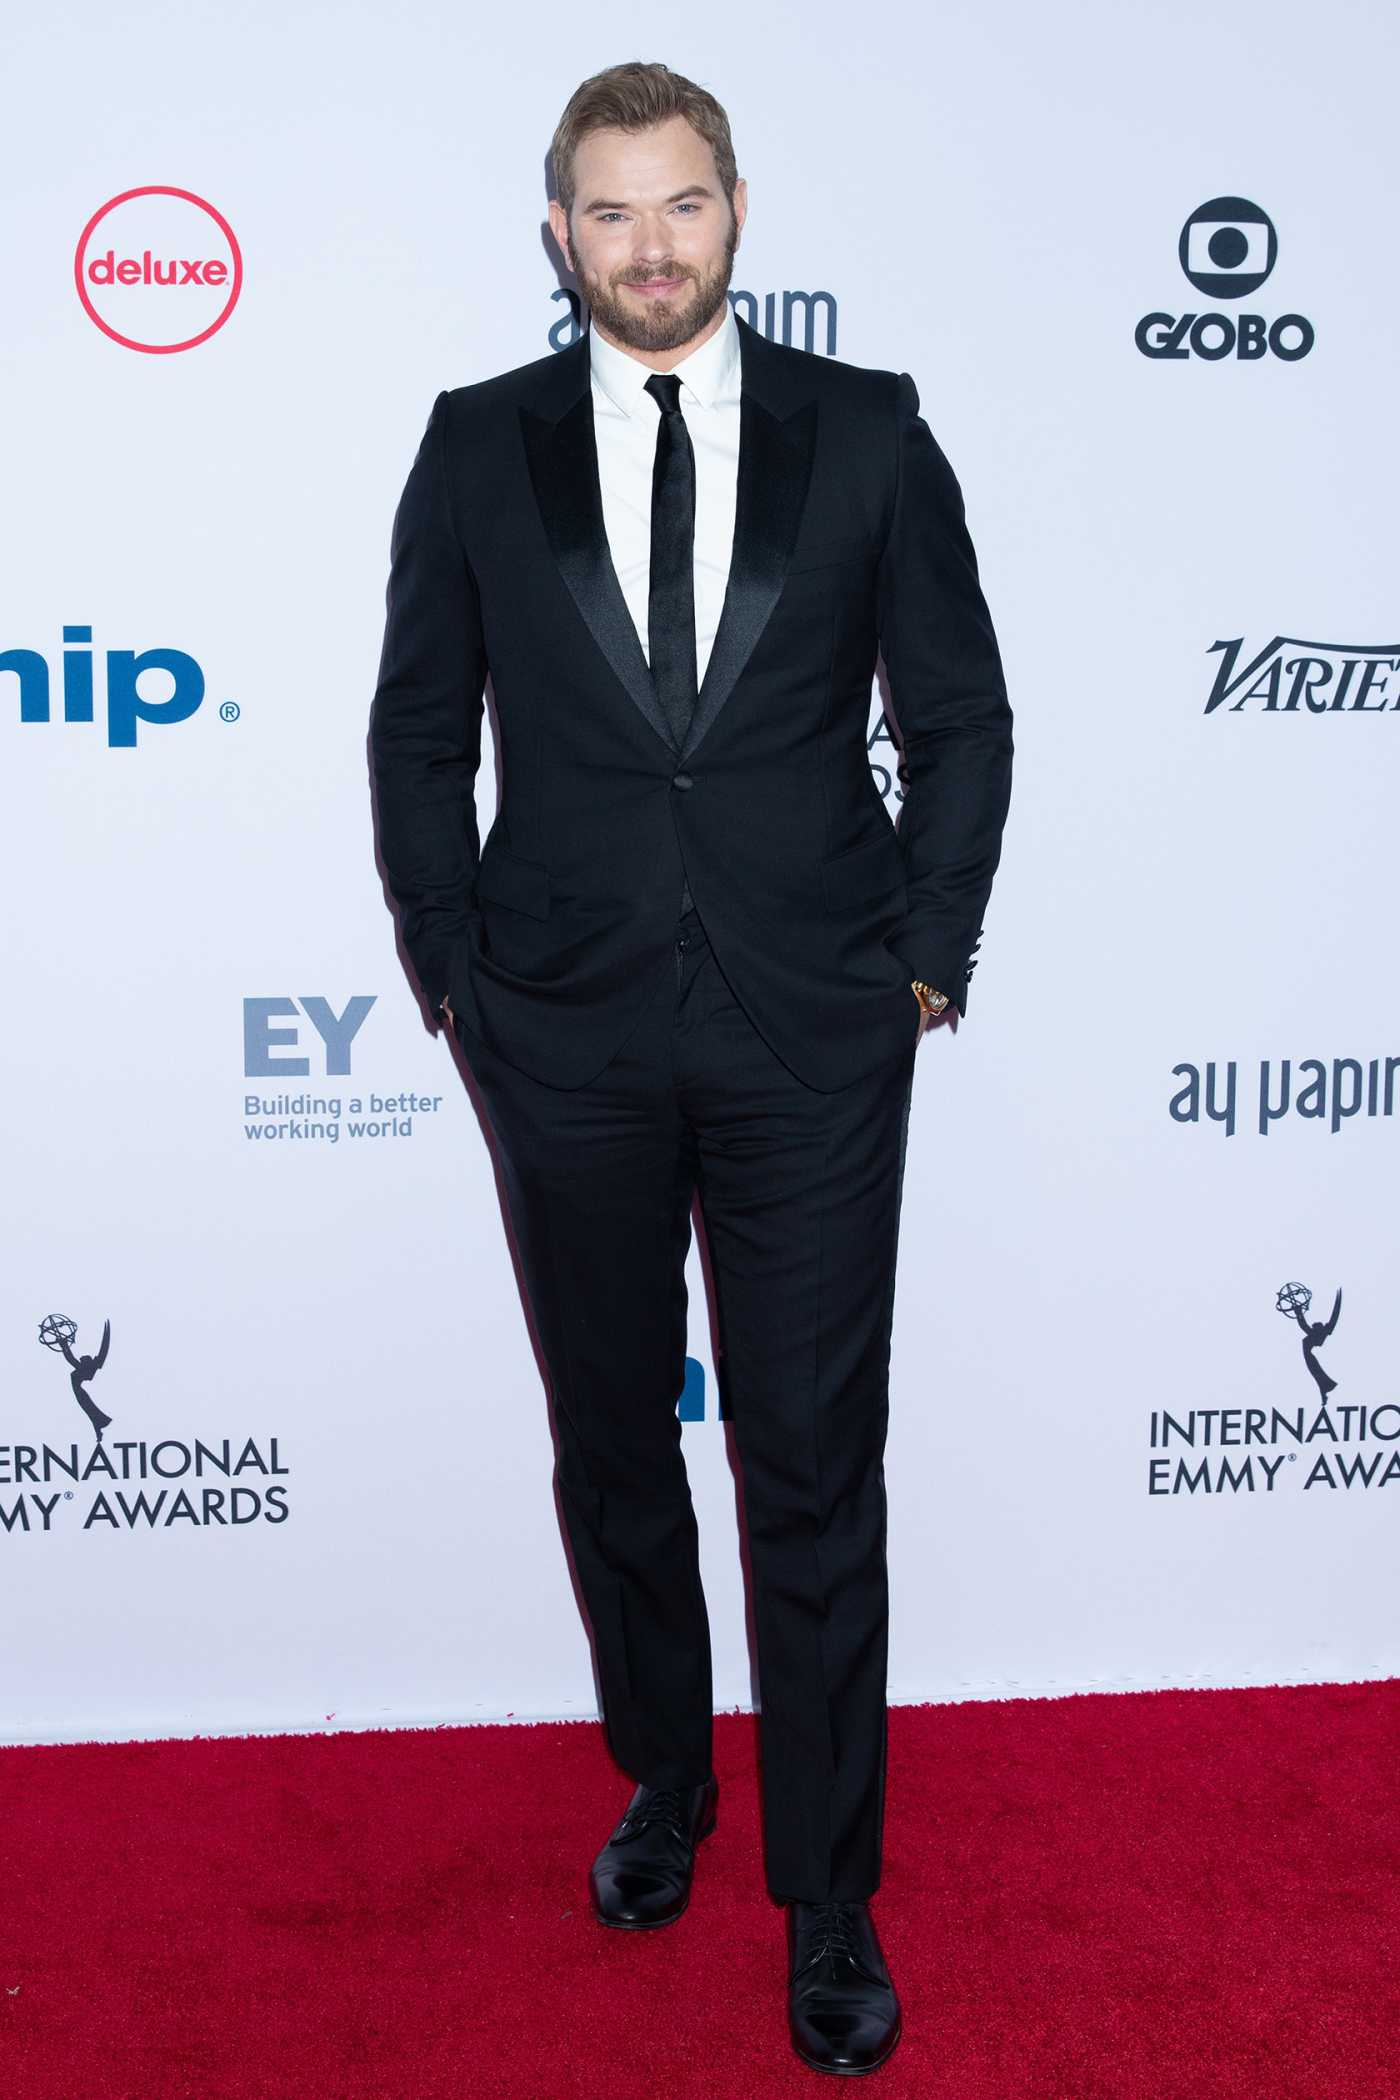 Kellan Lutz Attends the 47th International Emmy Awards in New York 11/25/2019